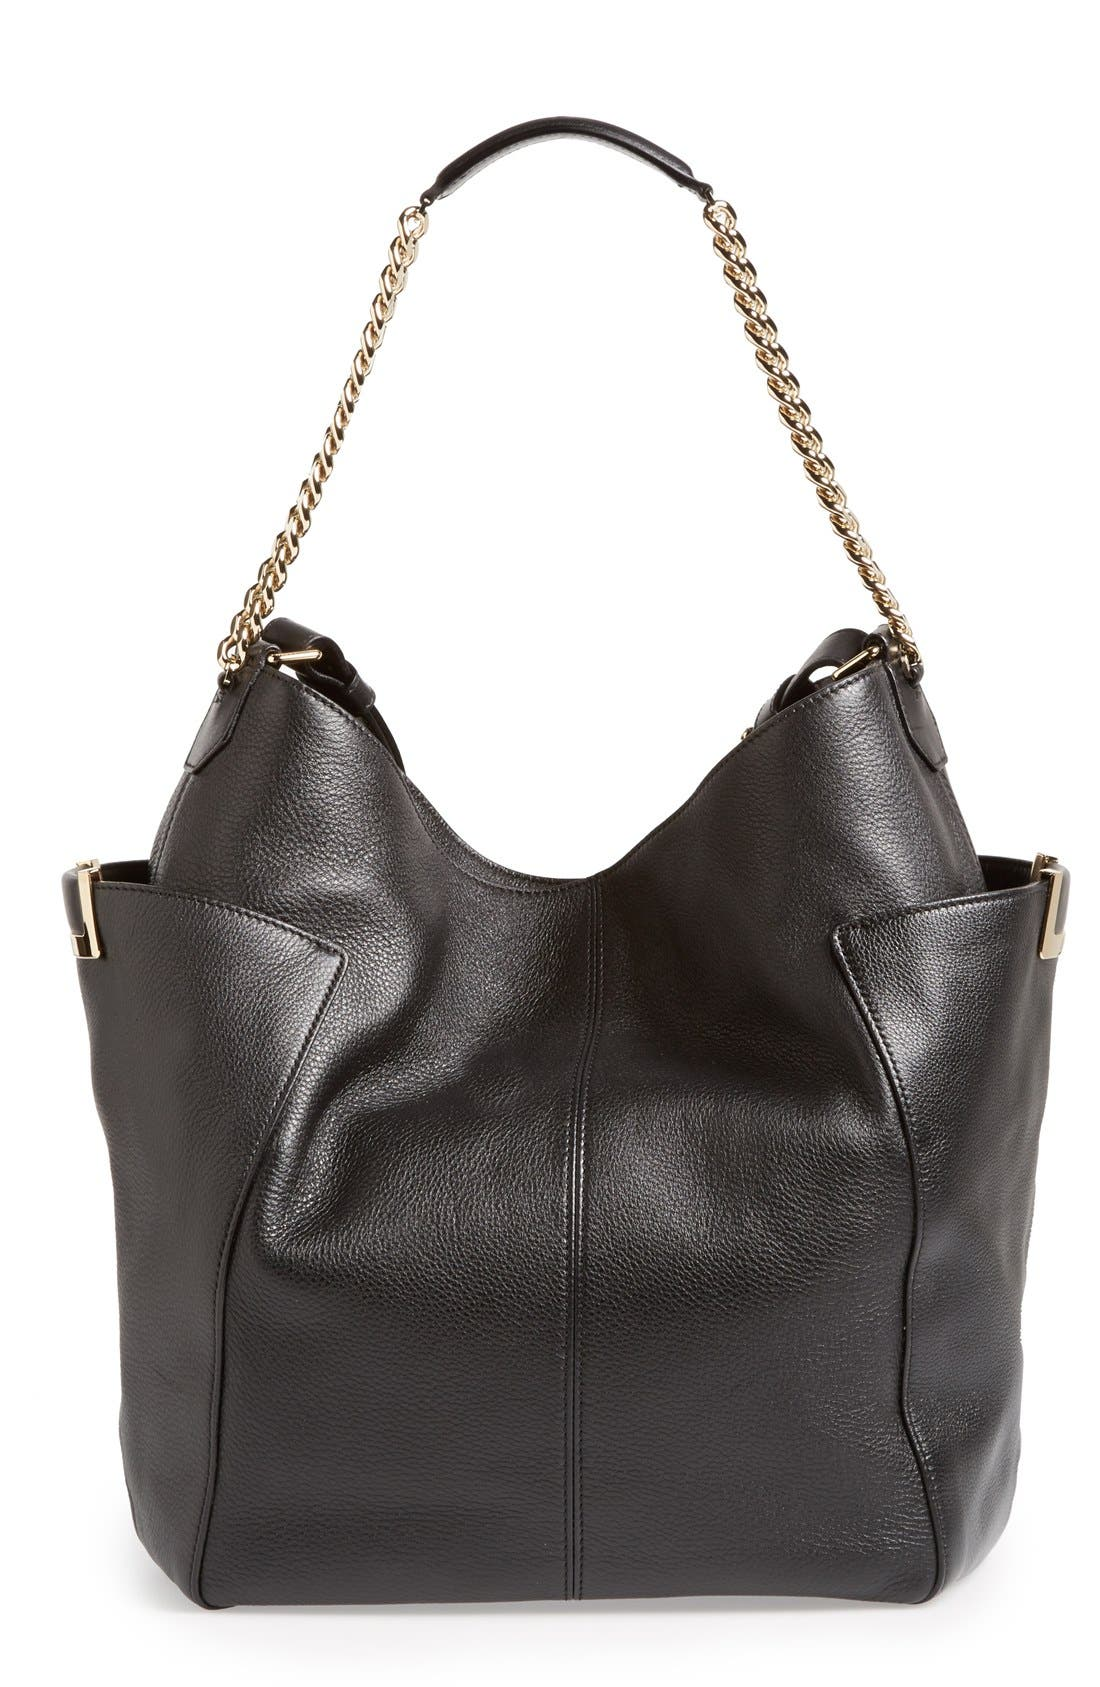 Alternate Image 1 Selected - Jimmy Choo 'Anna' Hobo